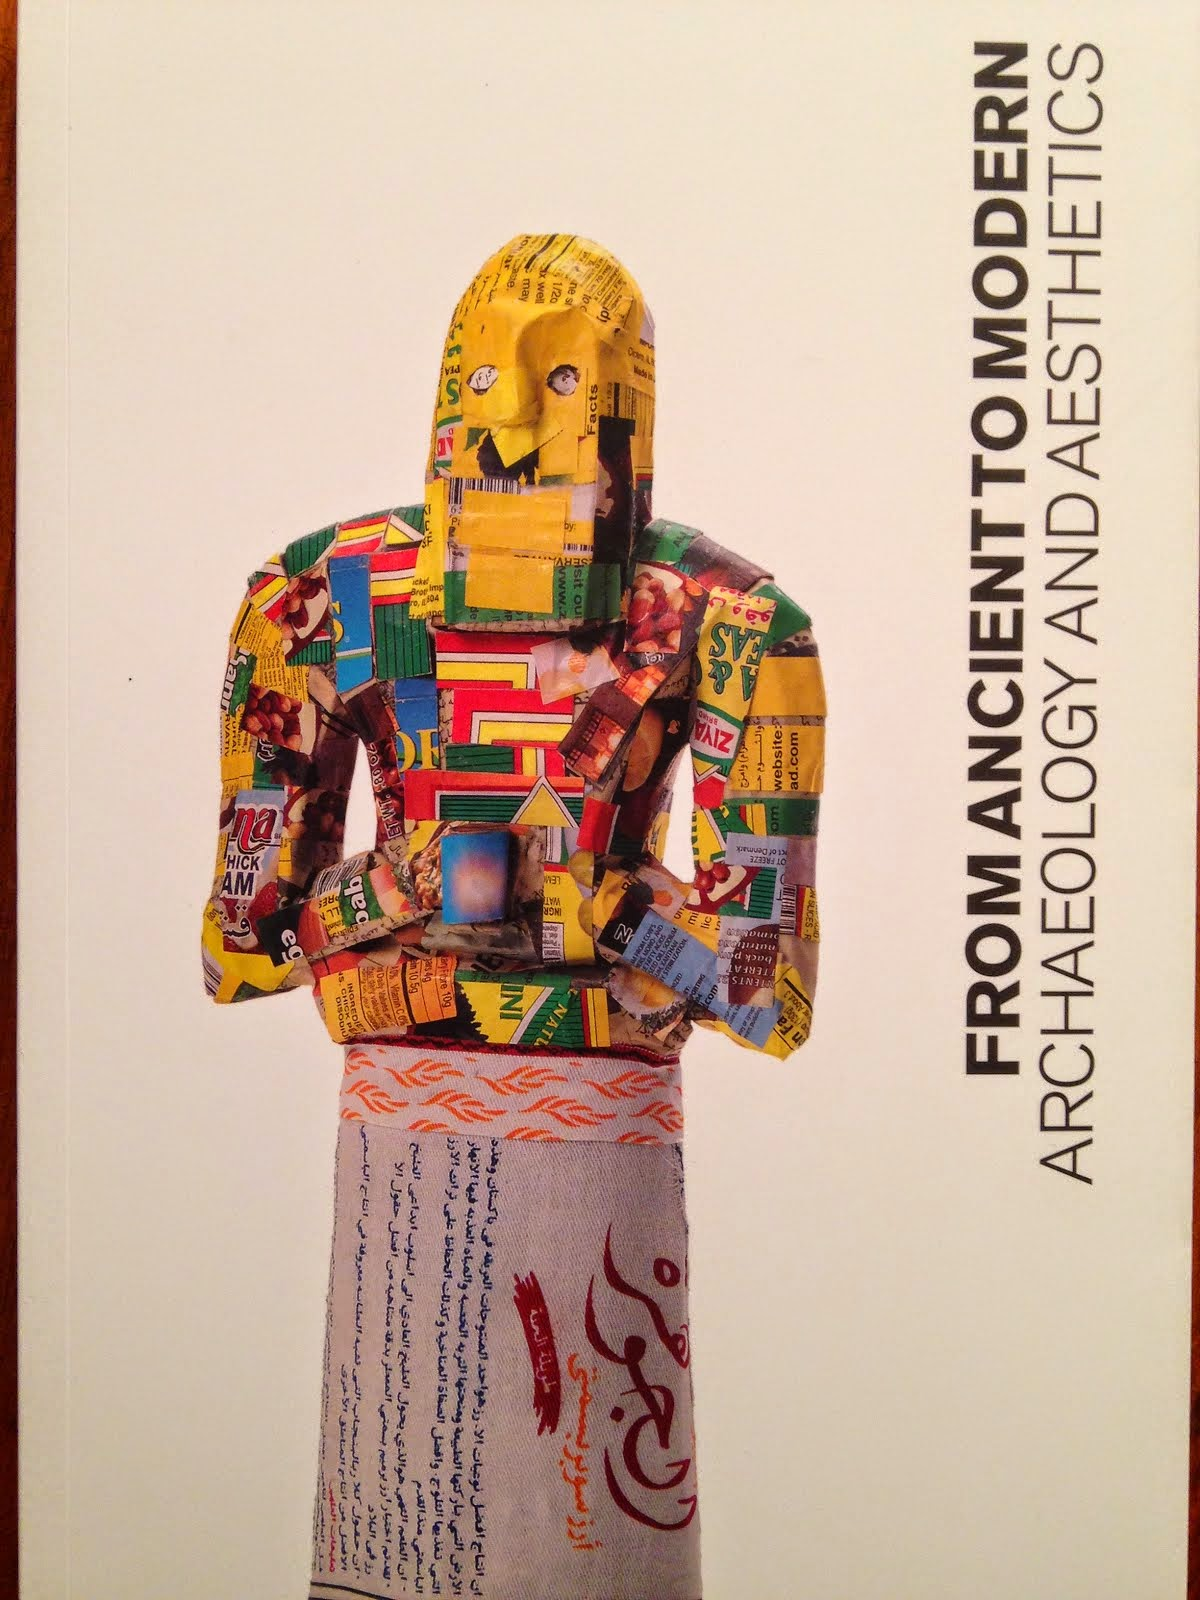 Jennifer Y. Chi & Pedro Azara (eds.): From Ancient to Modern. Archaeology and Aesthetics